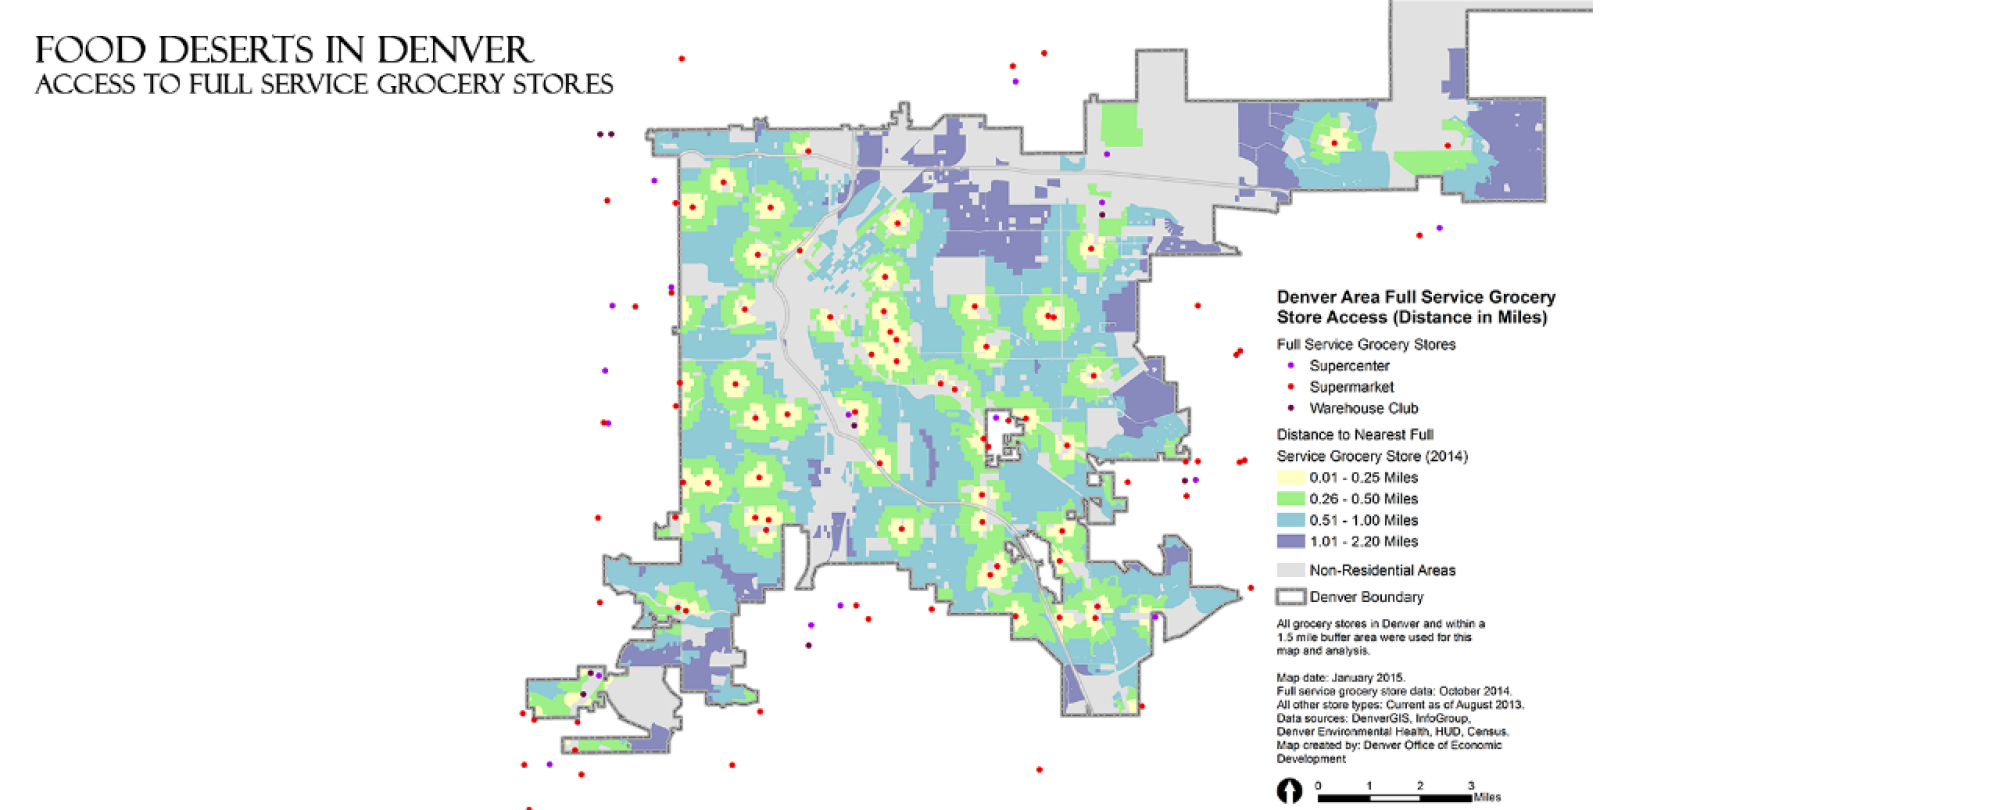 map of access to full service grocery stores in Denver county